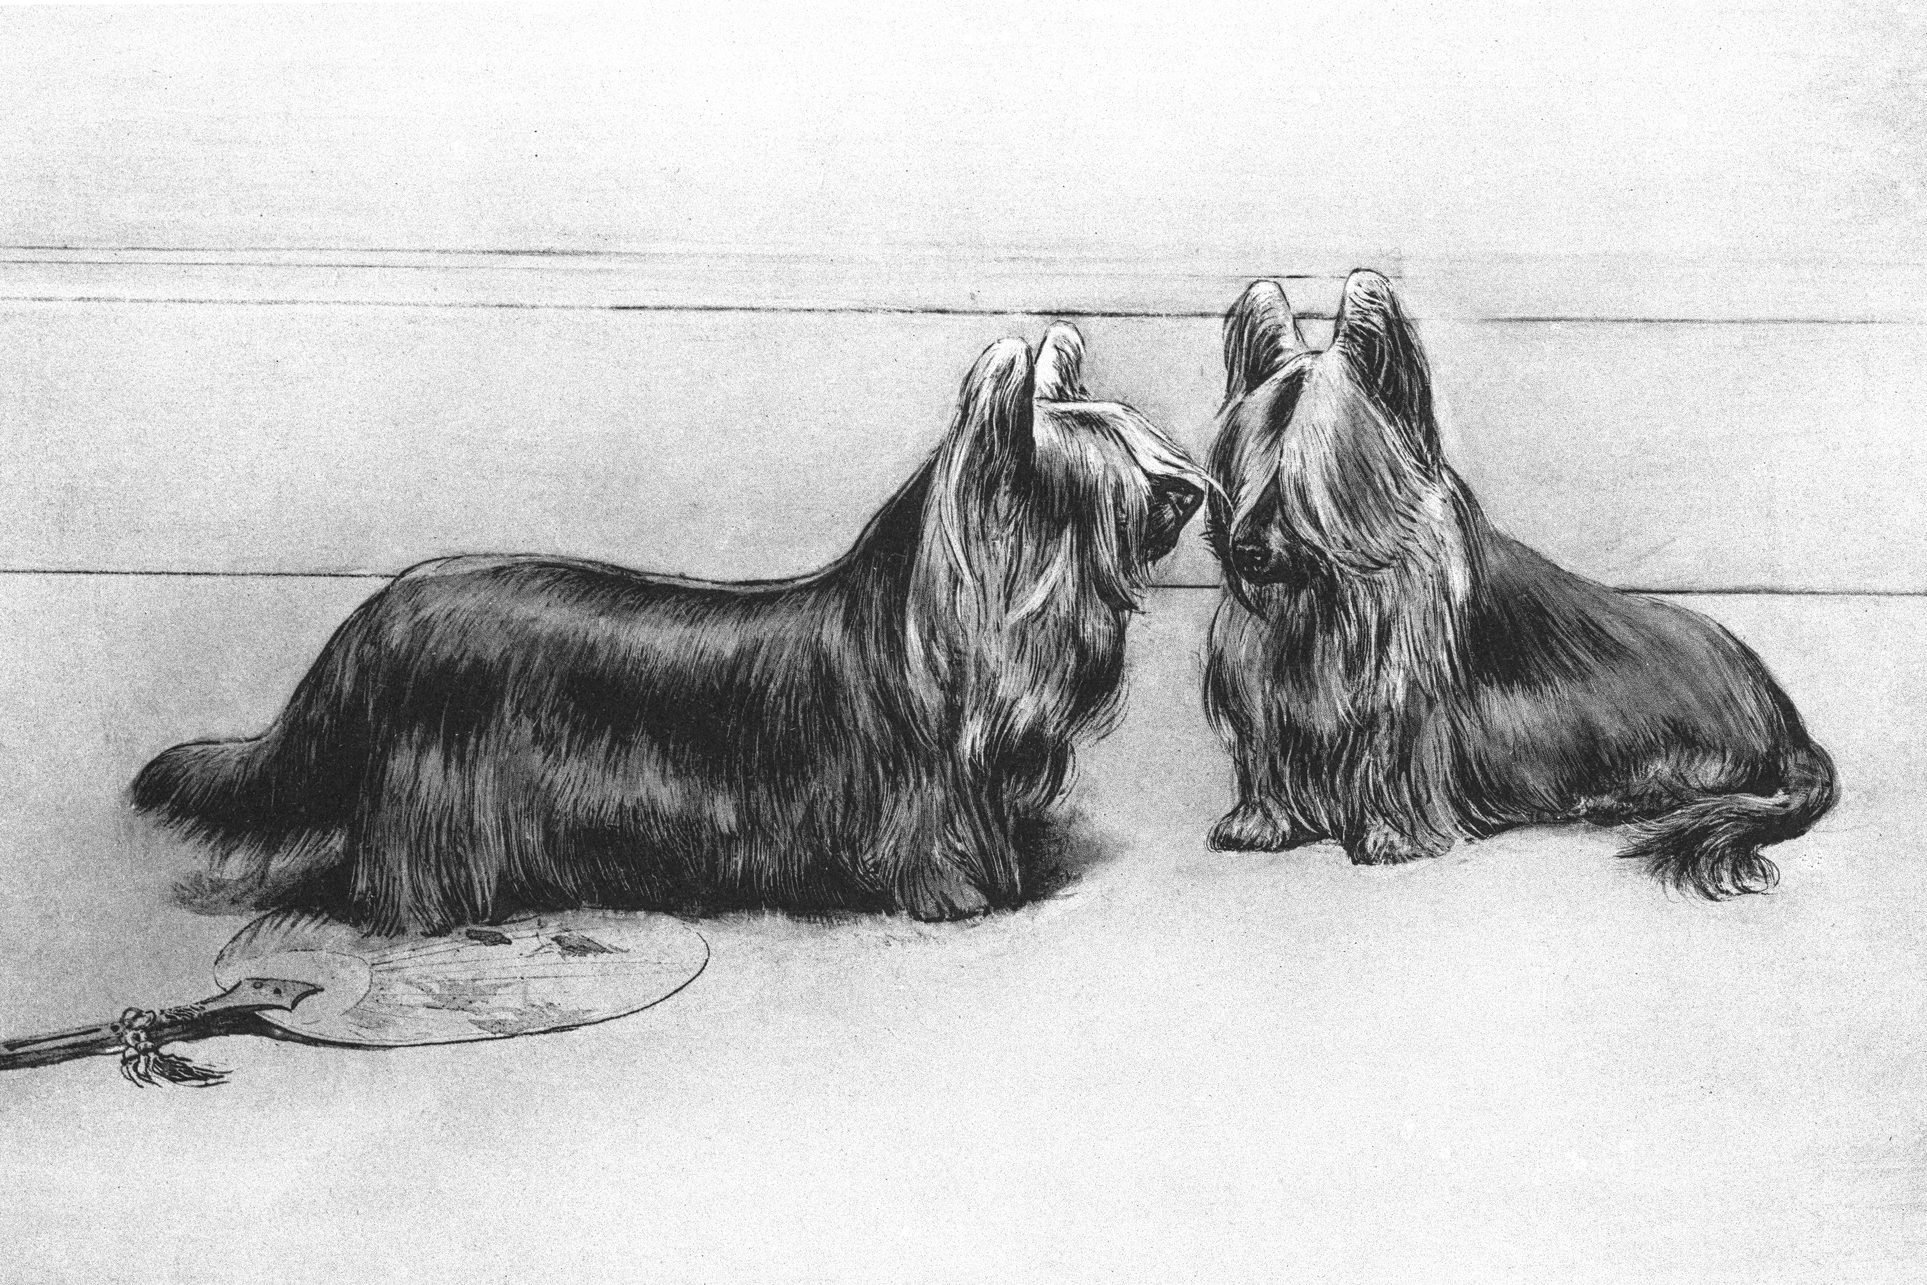 Old engraved illustration of The Clydesdale Terrier, The Paisley Terrier